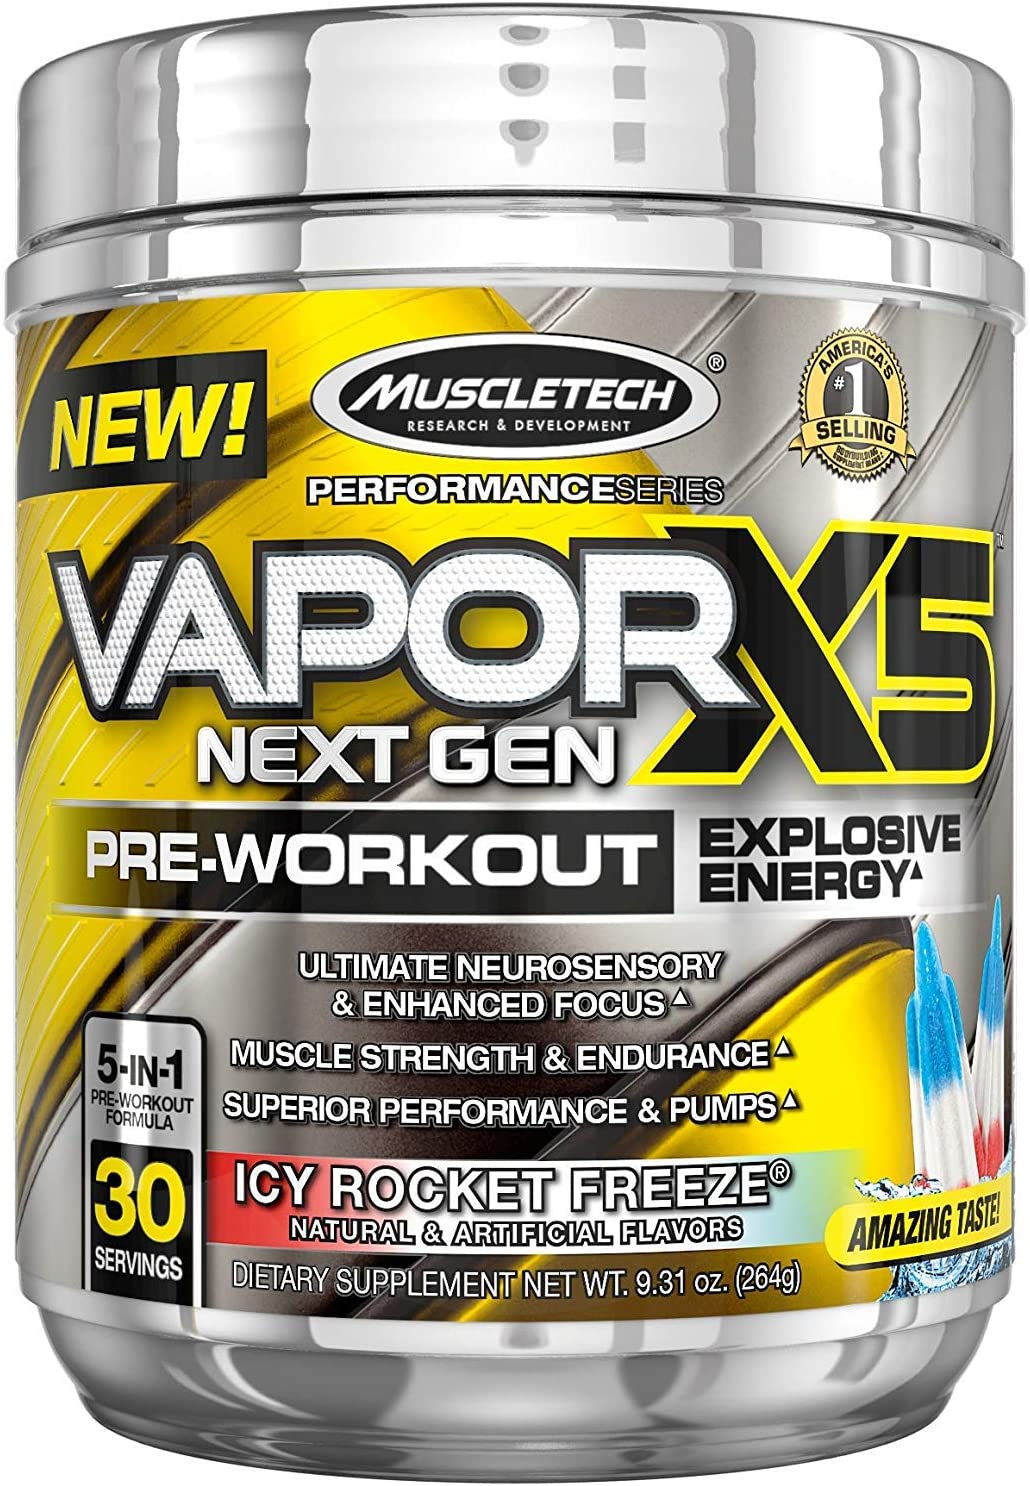 MuscleTech Vapor X5 Next Gen Pre Workout Powder, Explosive Energy Supplement, ICY Rocket Freeze, 30 Servings 9.6oz